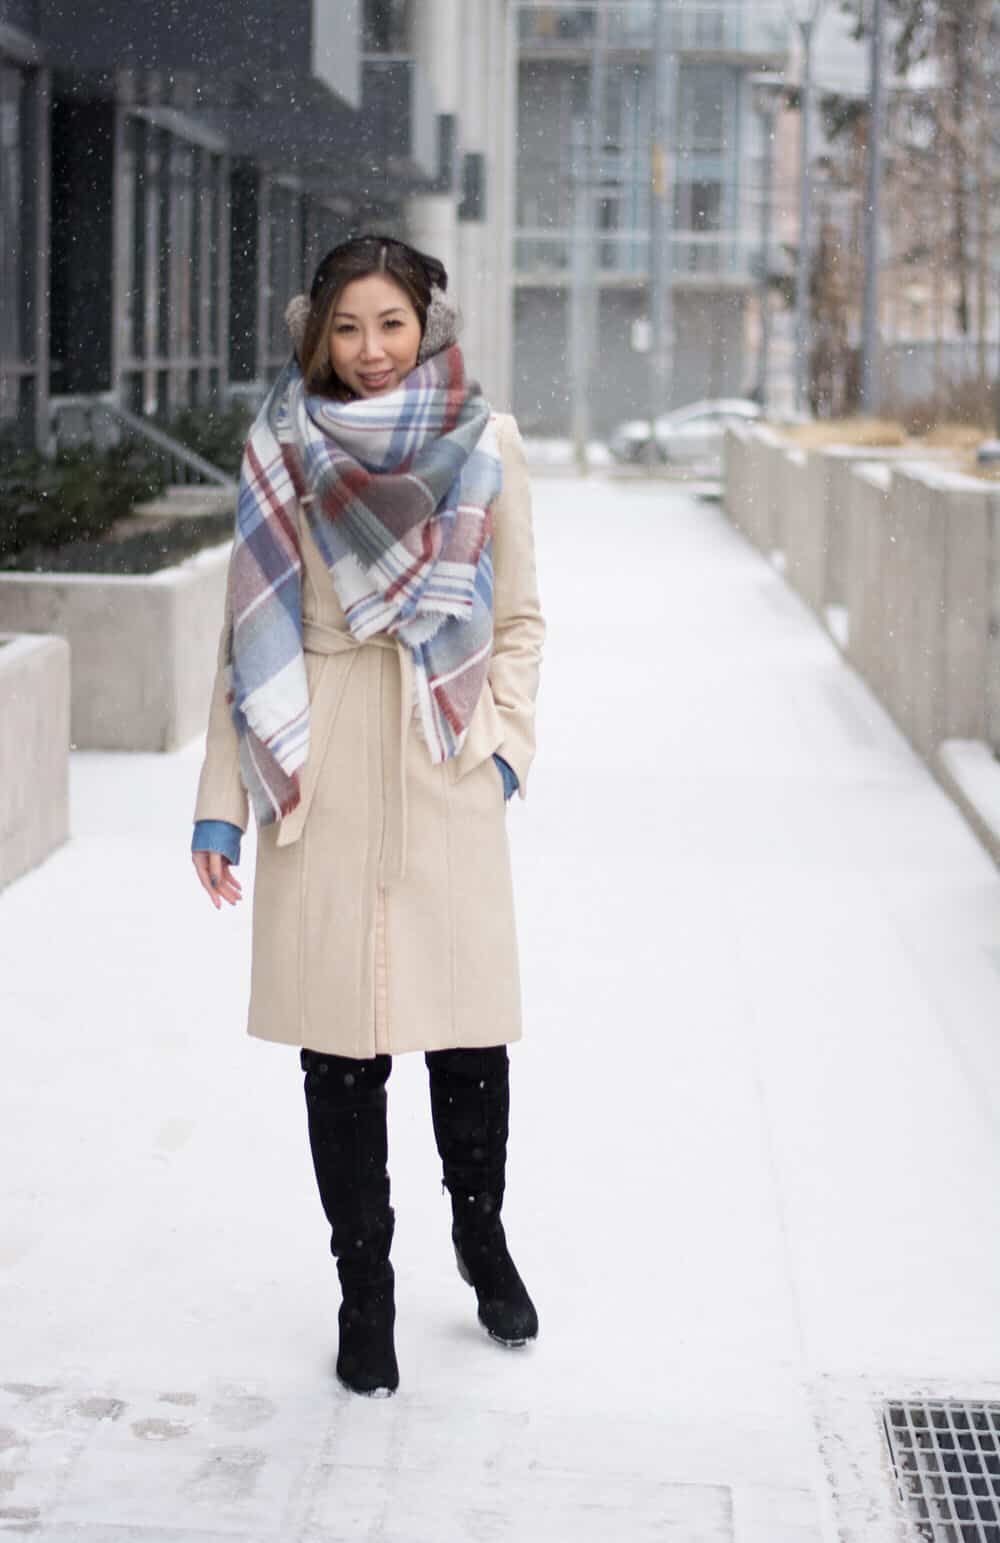 Cosy Winter OOTD streetstyle look: plaid scarf and long wool coat, fur ear muffs